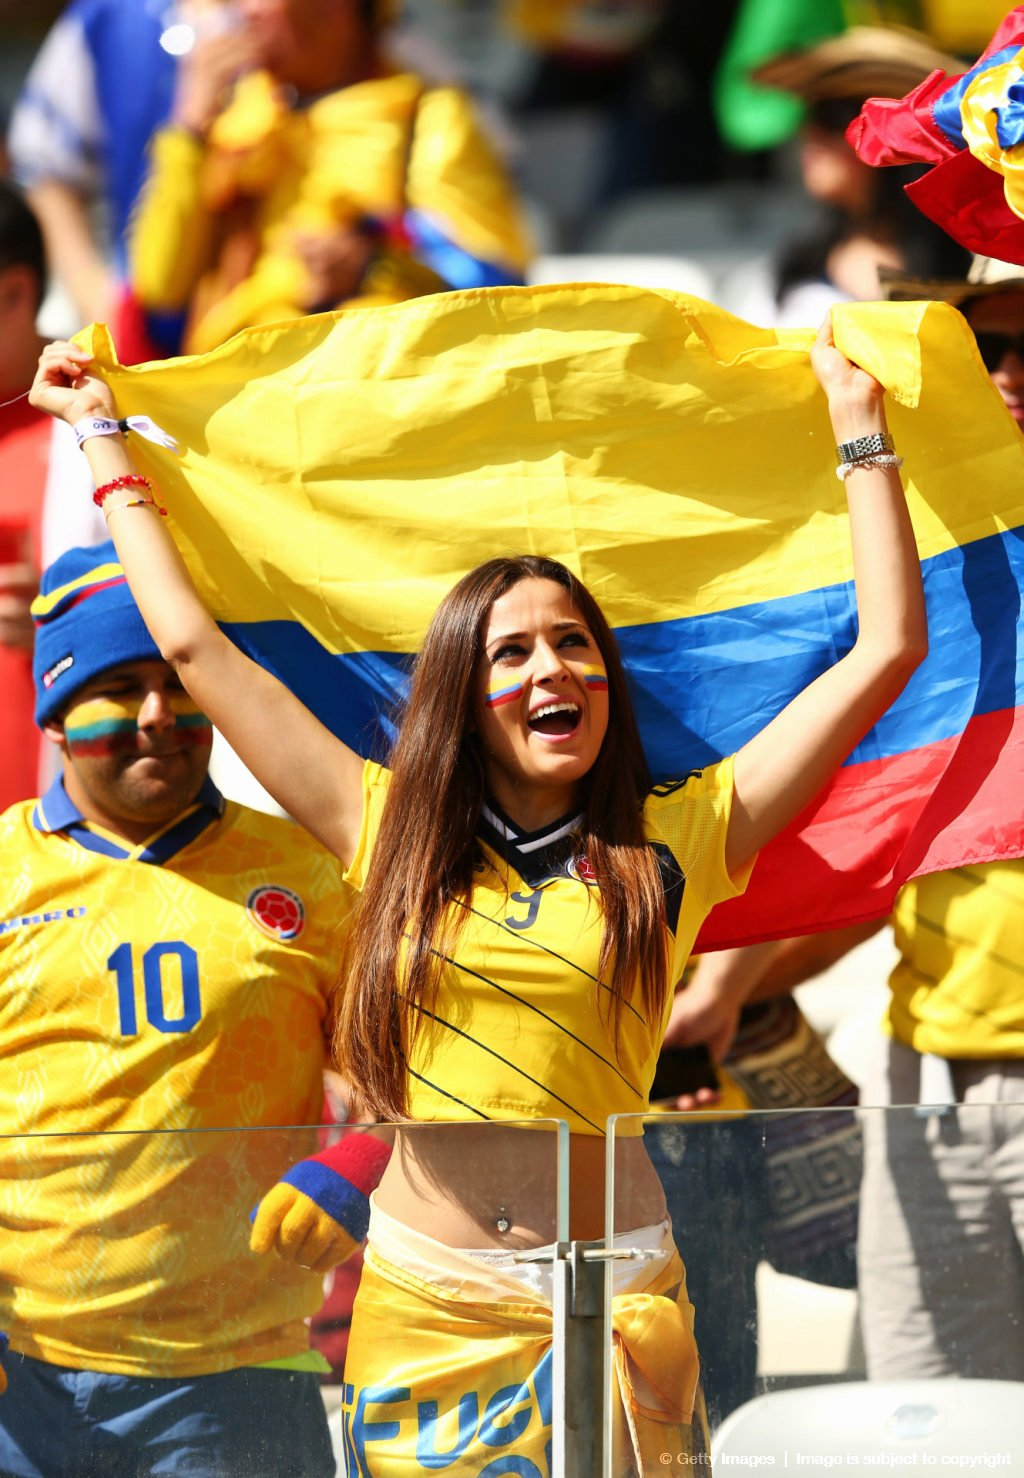 Pics Of Sexy Women Fresh 66 Beautiful S Football Fans Spotted at the World Cup